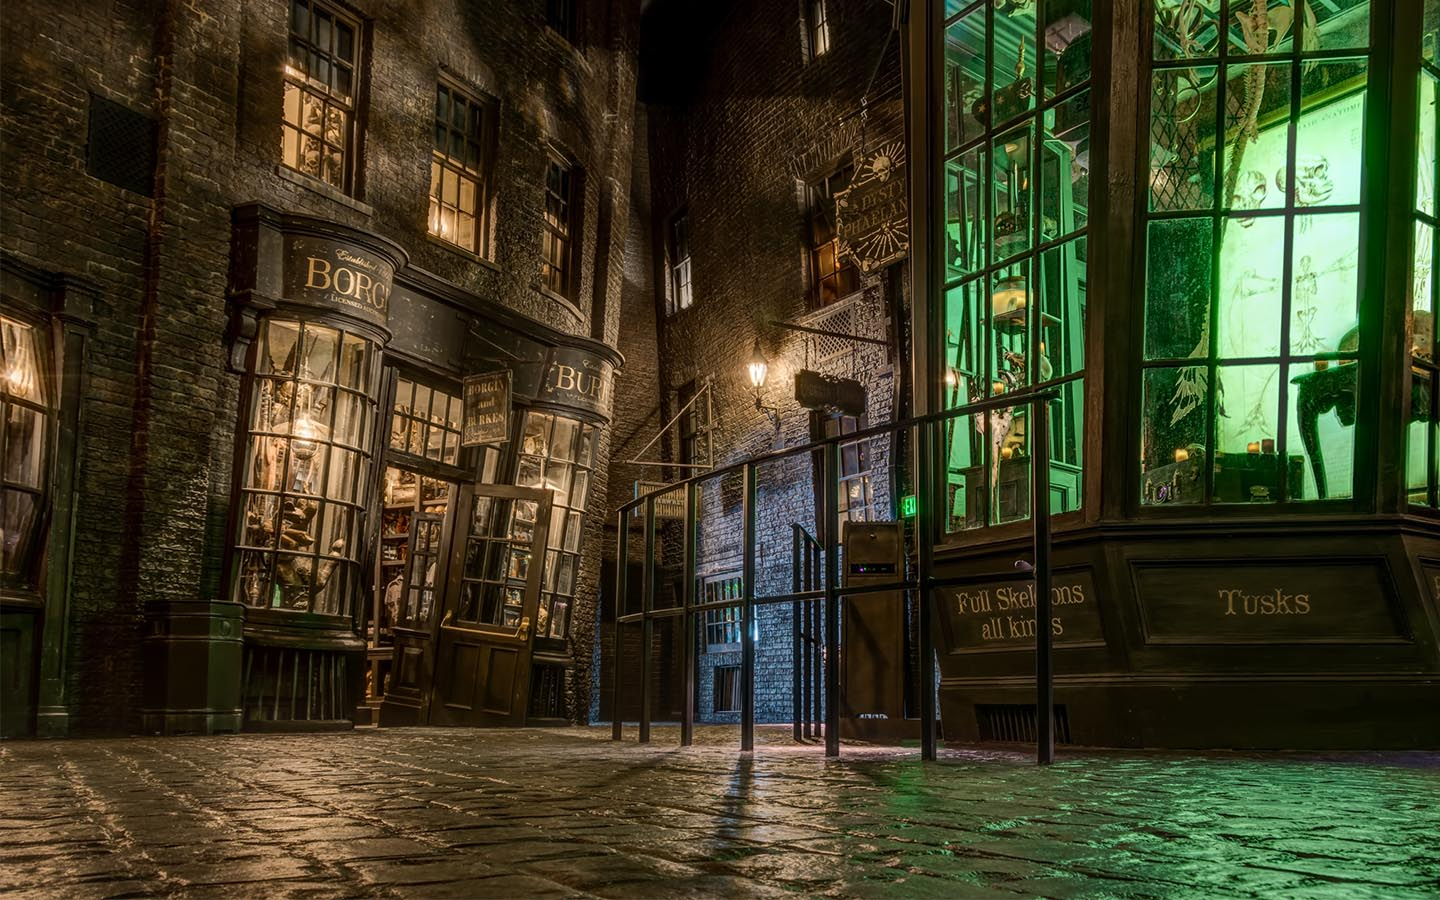 Diagon-Alley-Wizarding-World-Knockturn-Camera-Day